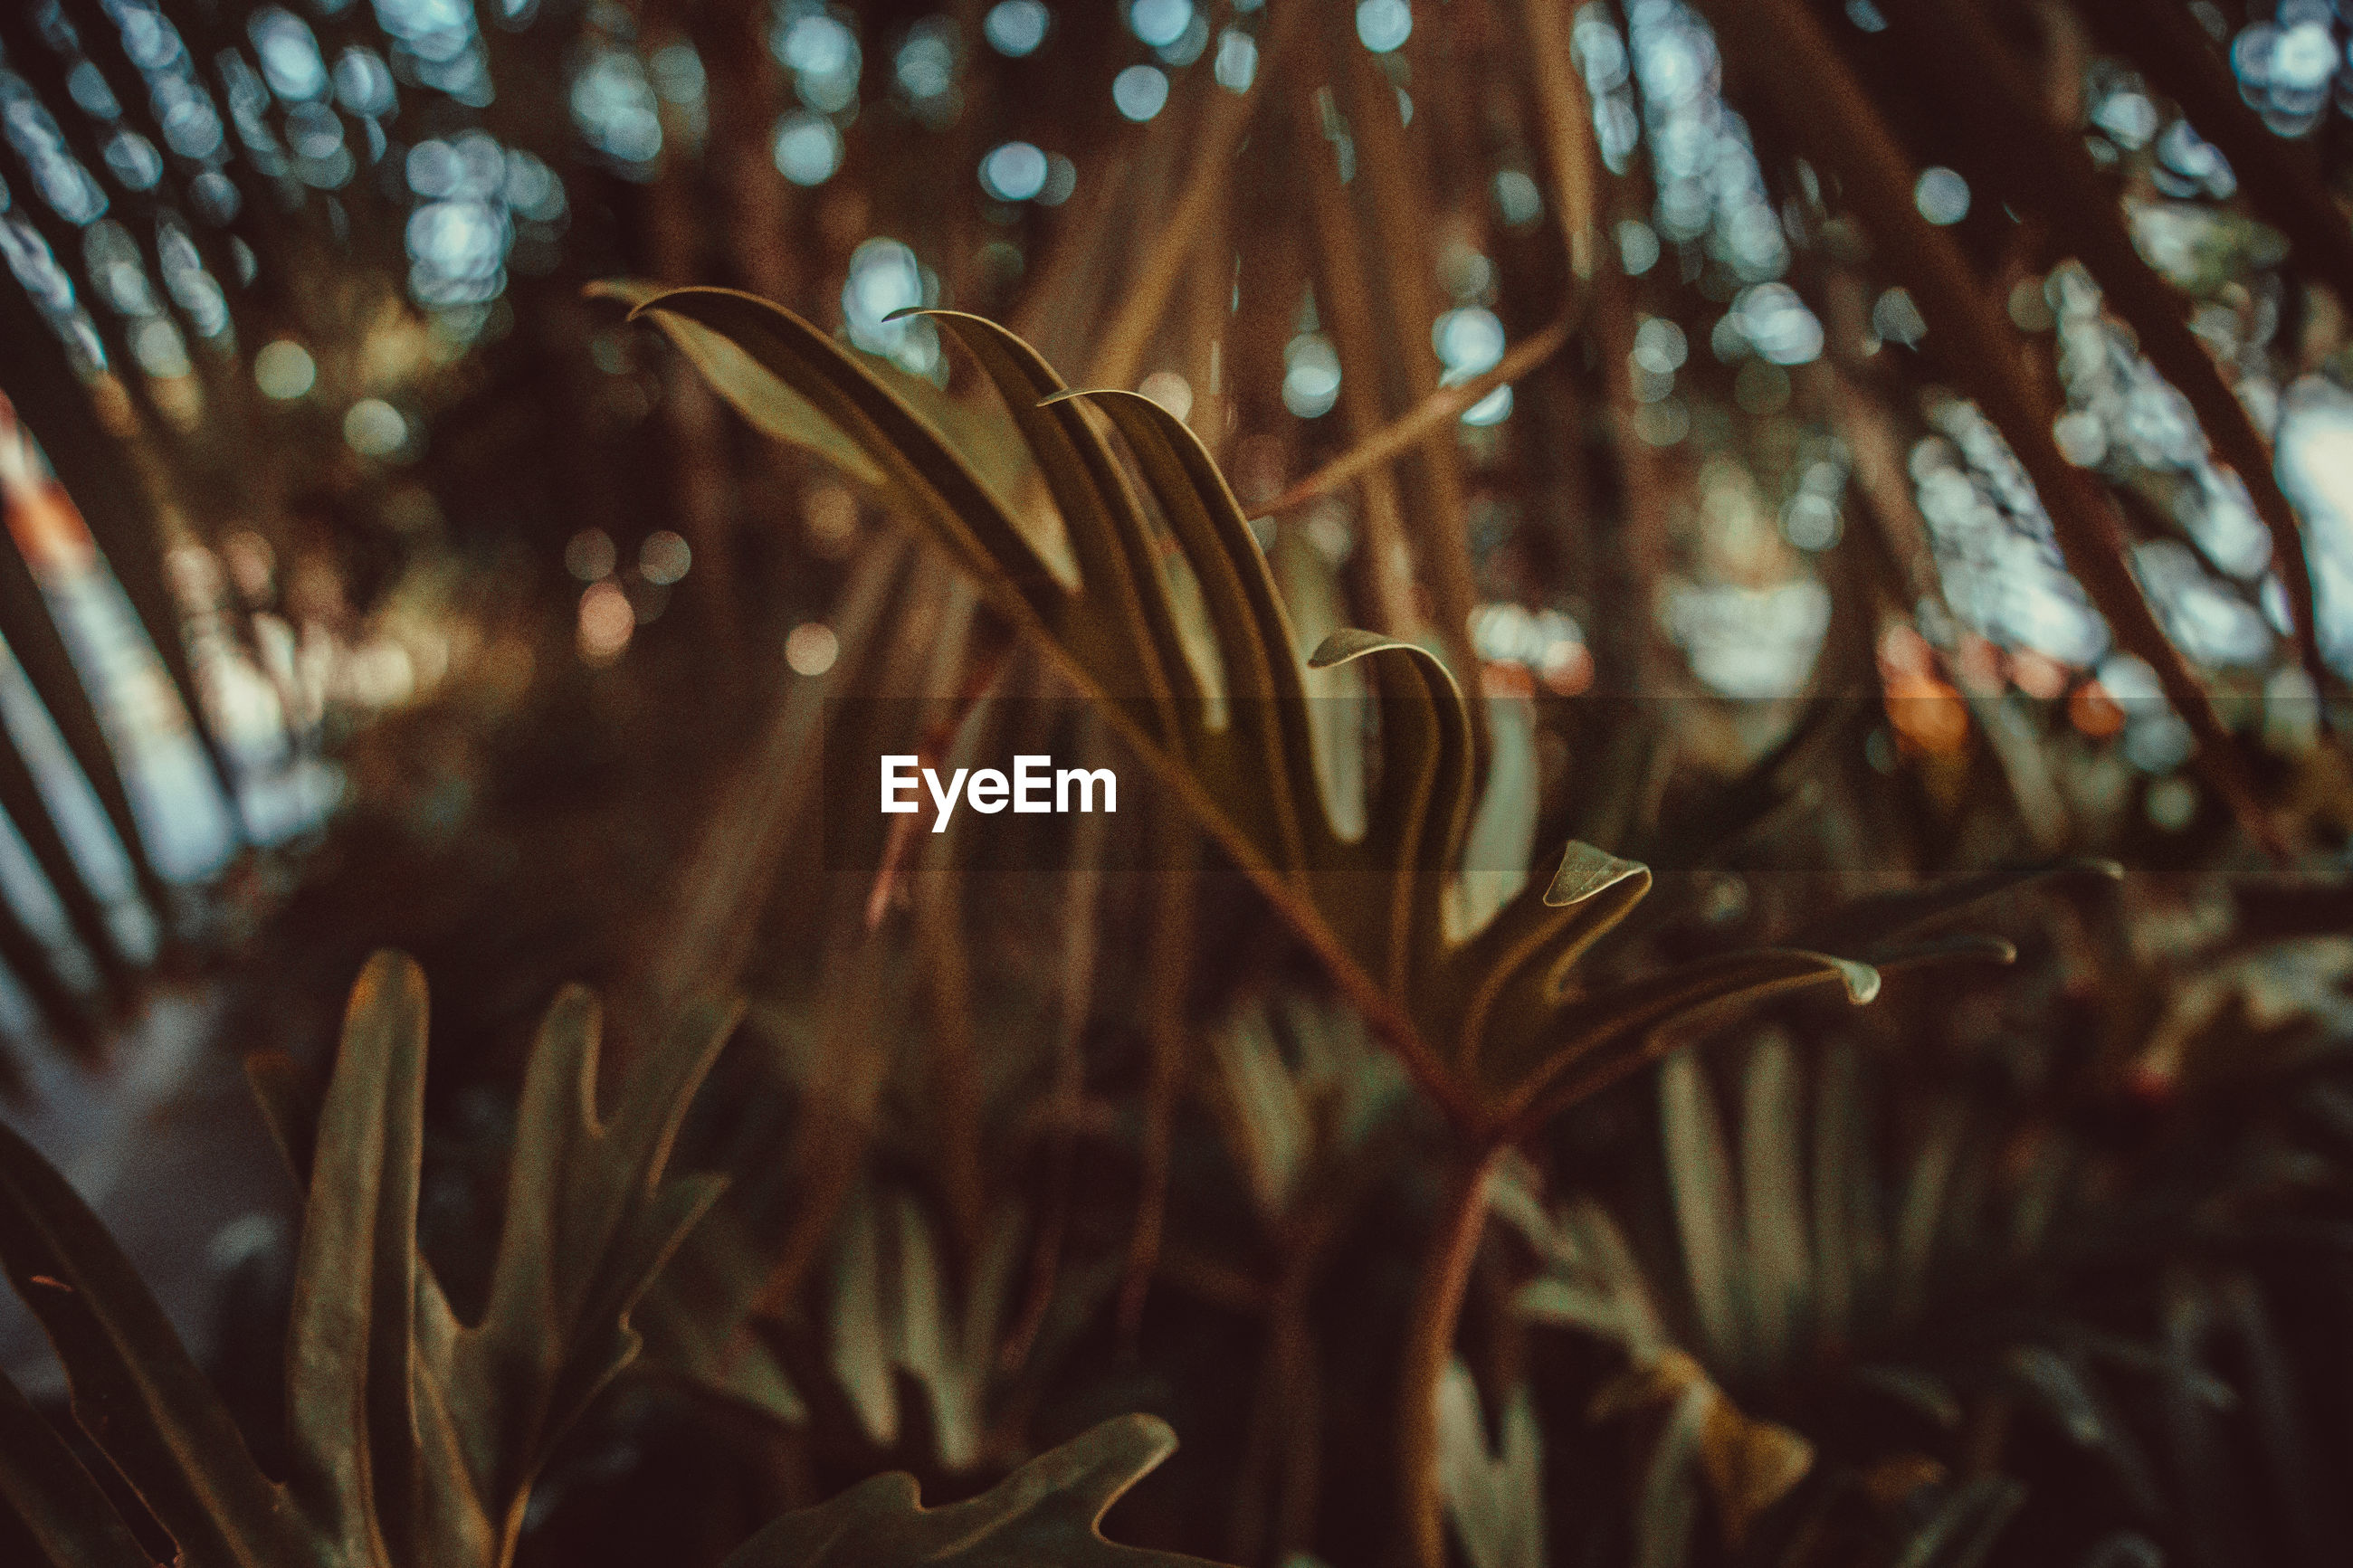 growth, plant, focus on foreground, close-up, beauty in nature, no people, nature, day, selective focus, tranquility, freshness, outdoors, leaf, tree, plant part, vulnerability, flowering plant, fragility, flower, land, blade of grass, dew